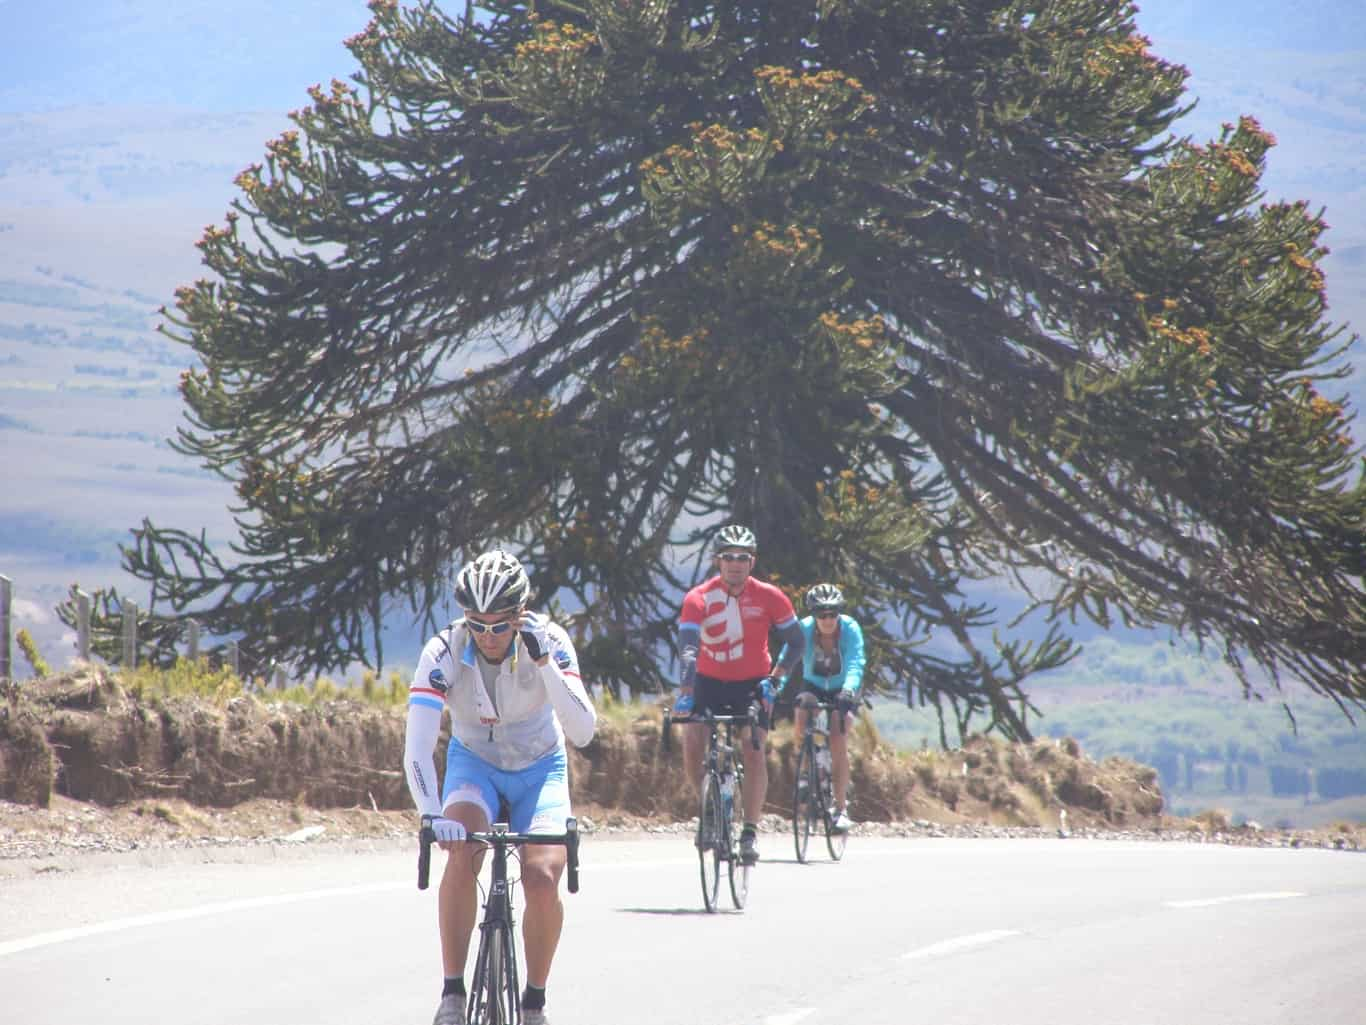 Kutralkura Geopark - The Andes Ride